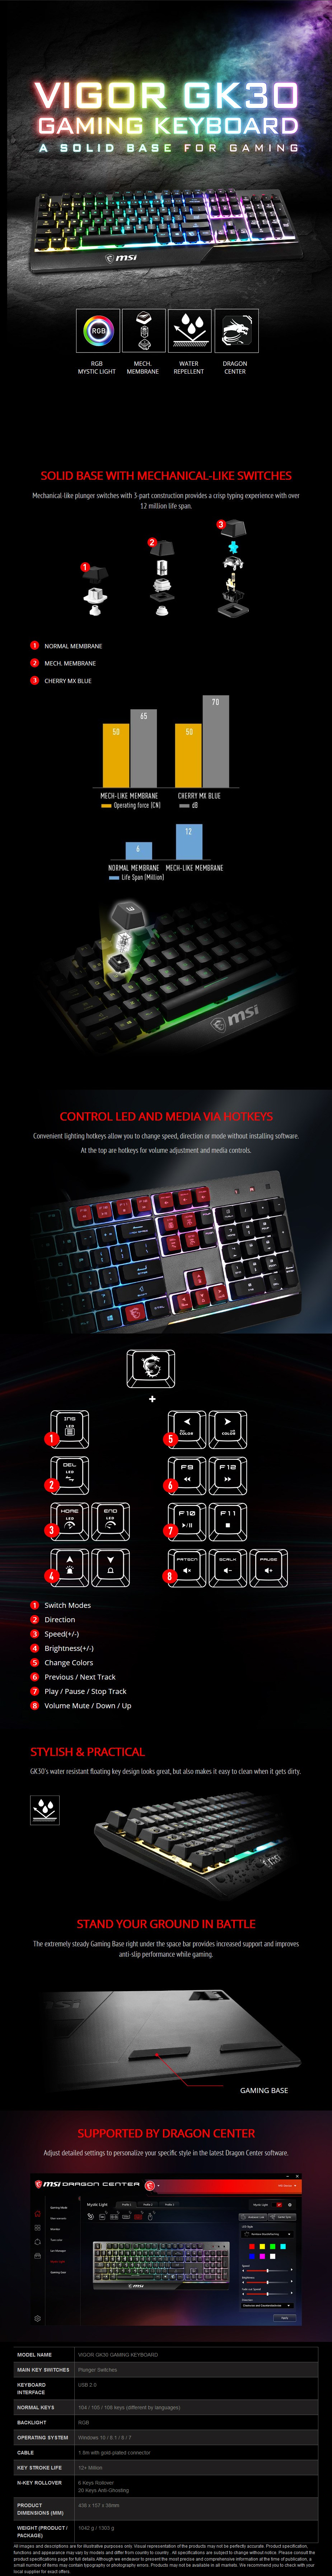 MSI Vigor GK30 Gaming Keyboard - Plunger Switches - Desktop Overview 1